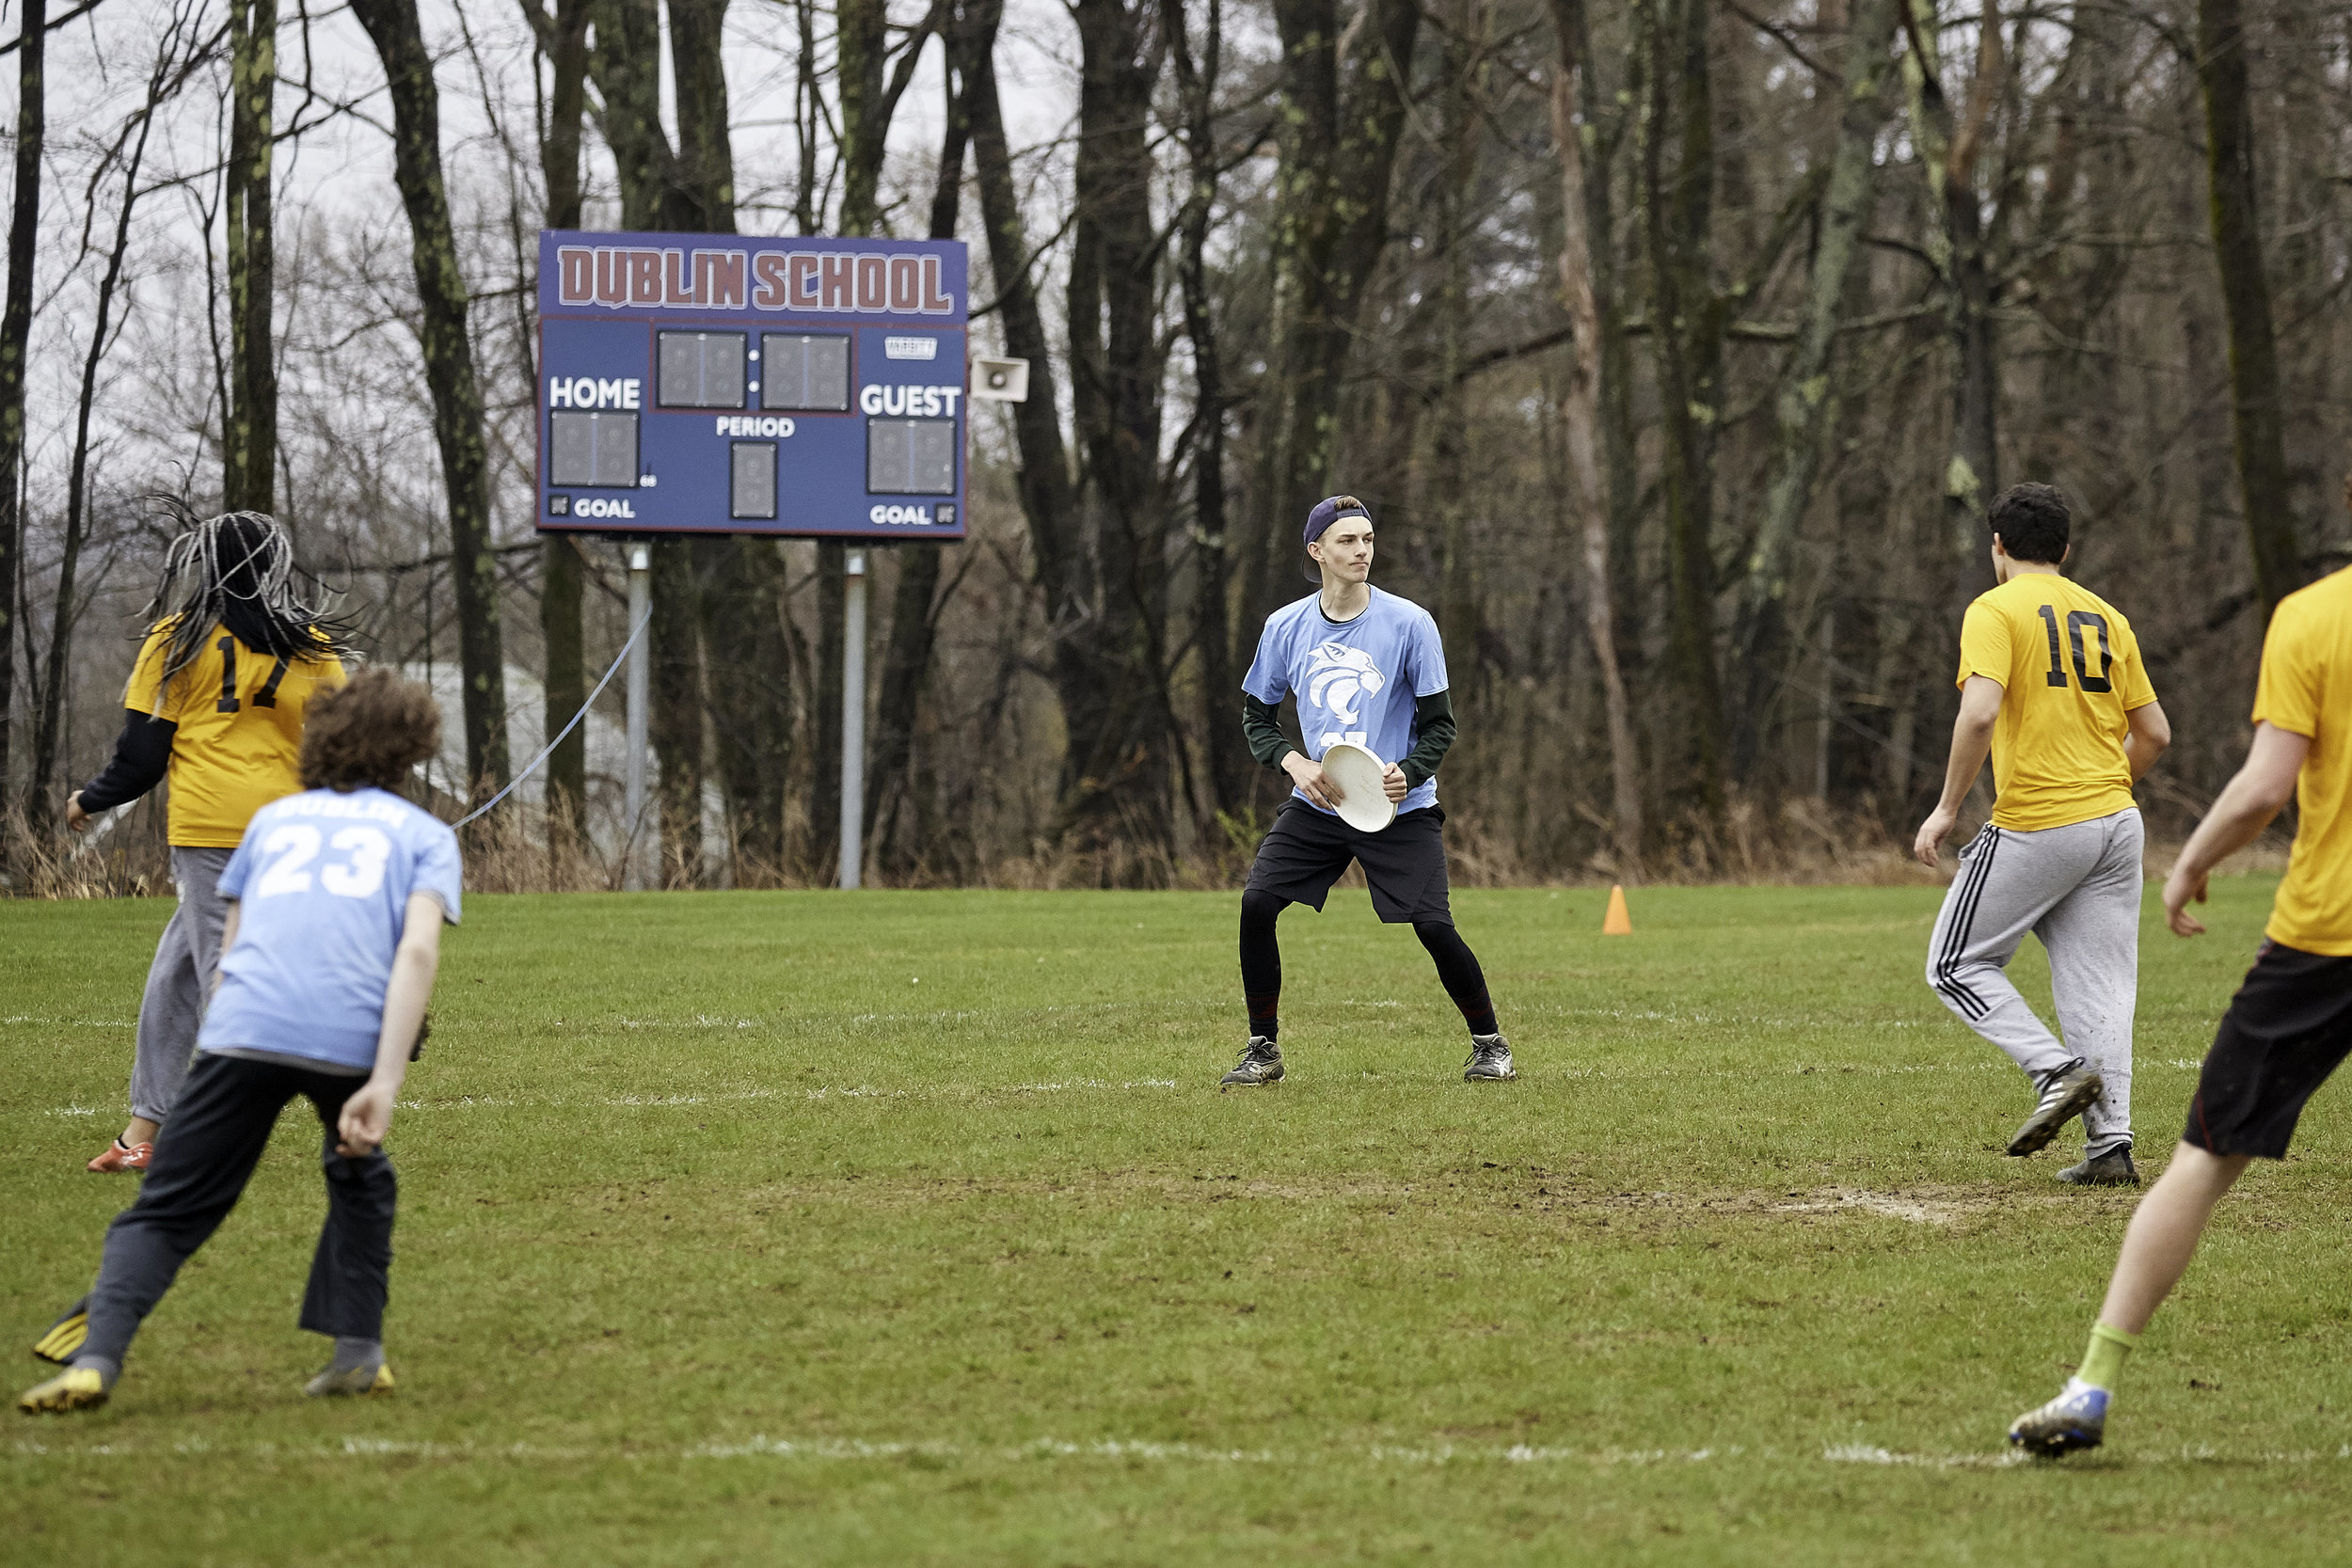 Ultimate Frisbee vs. Eagle Hill School - May 3, 2019 - 188552.jpg